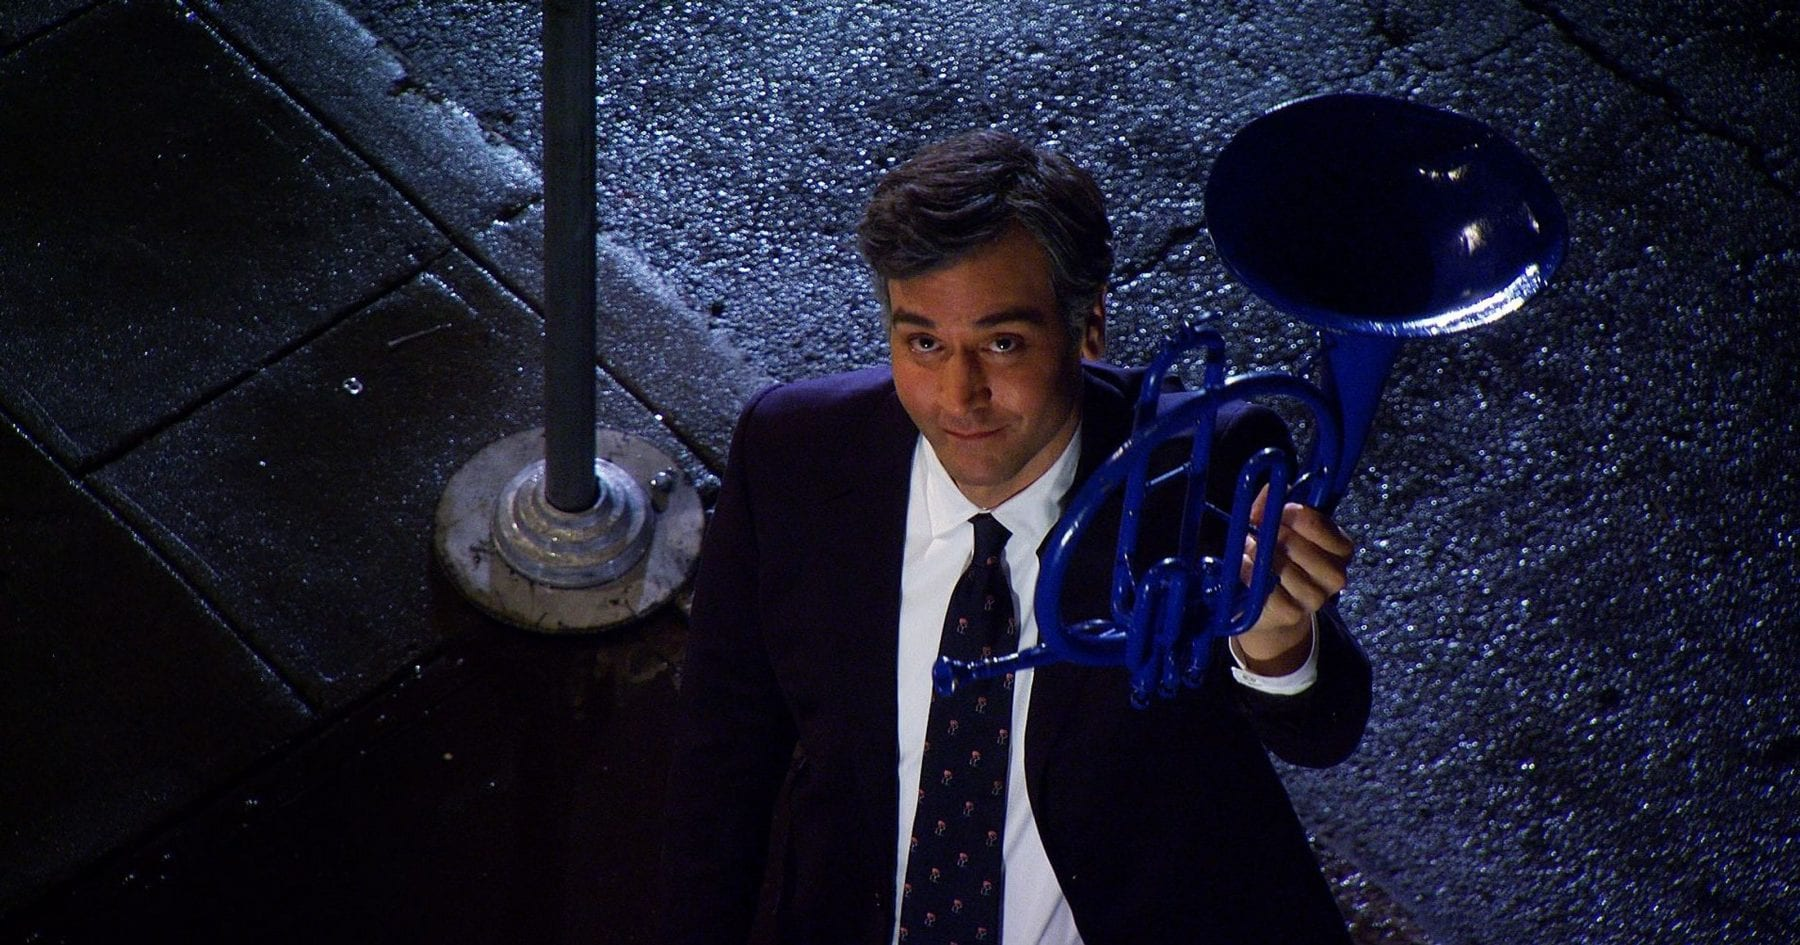 How I Met Your Mother finale, blue french horn